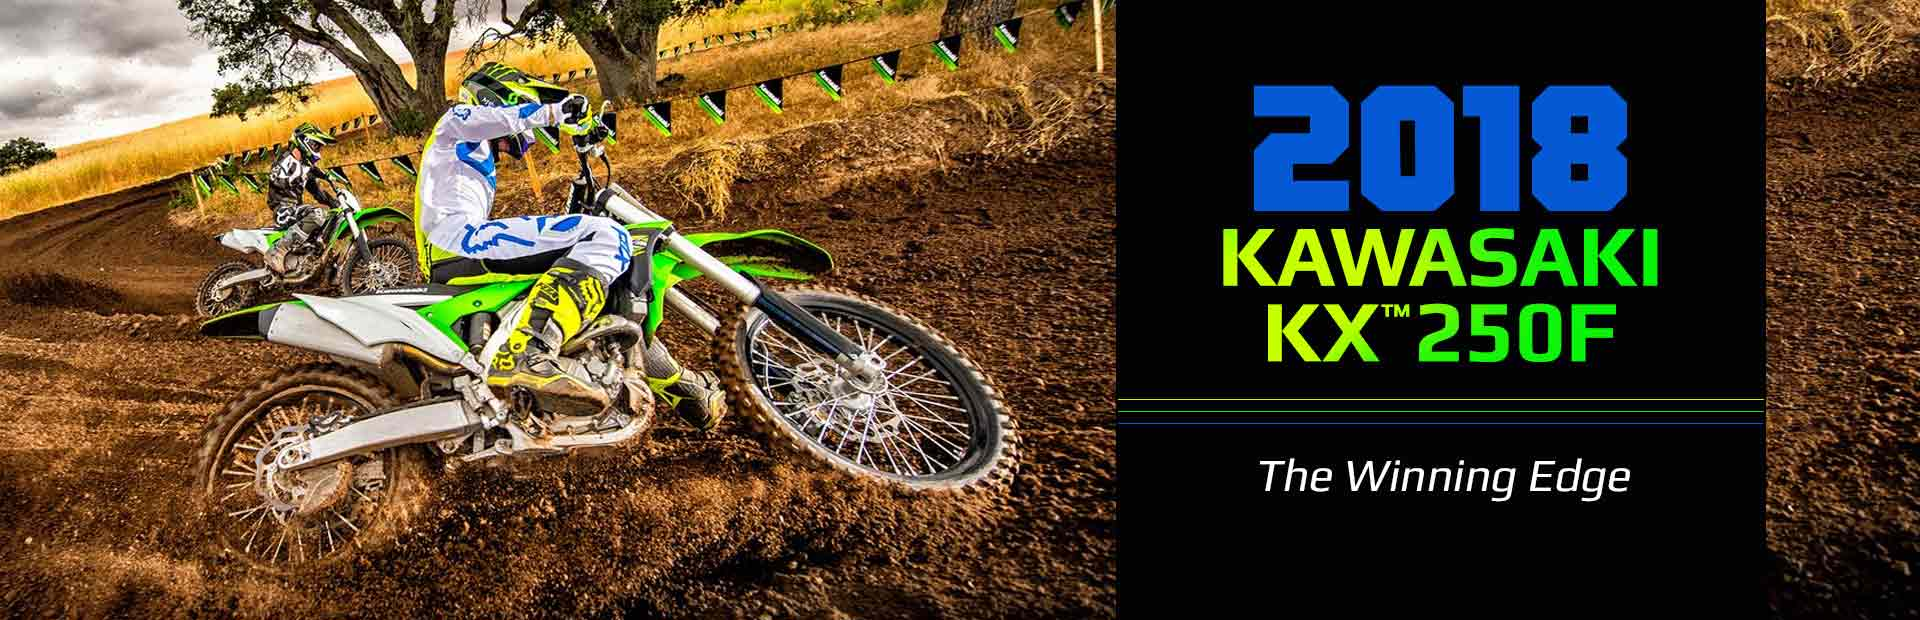 2018 Kawasaki KX™250F: Click here to view the model.